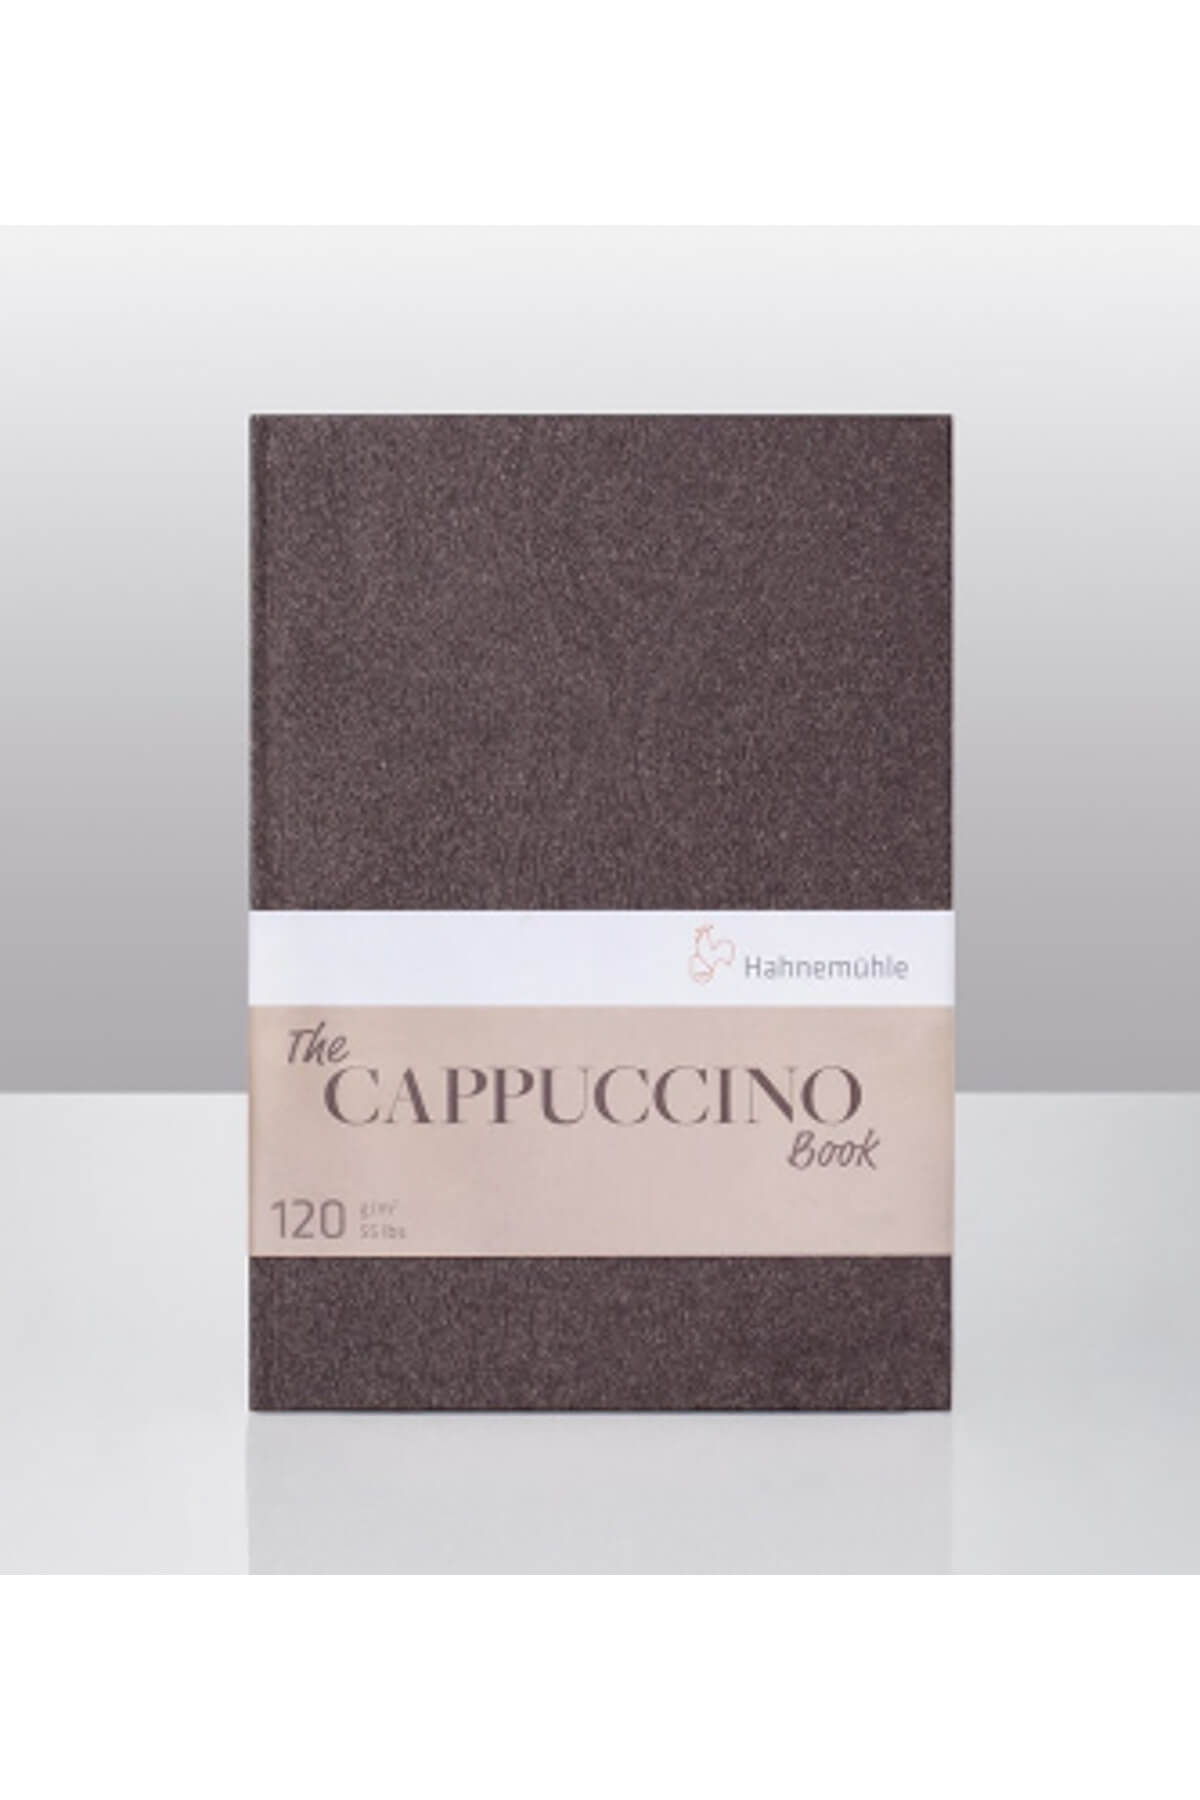 Hahnemühle The Cappuccino Book Sert Kapak Defter 120 Gr.